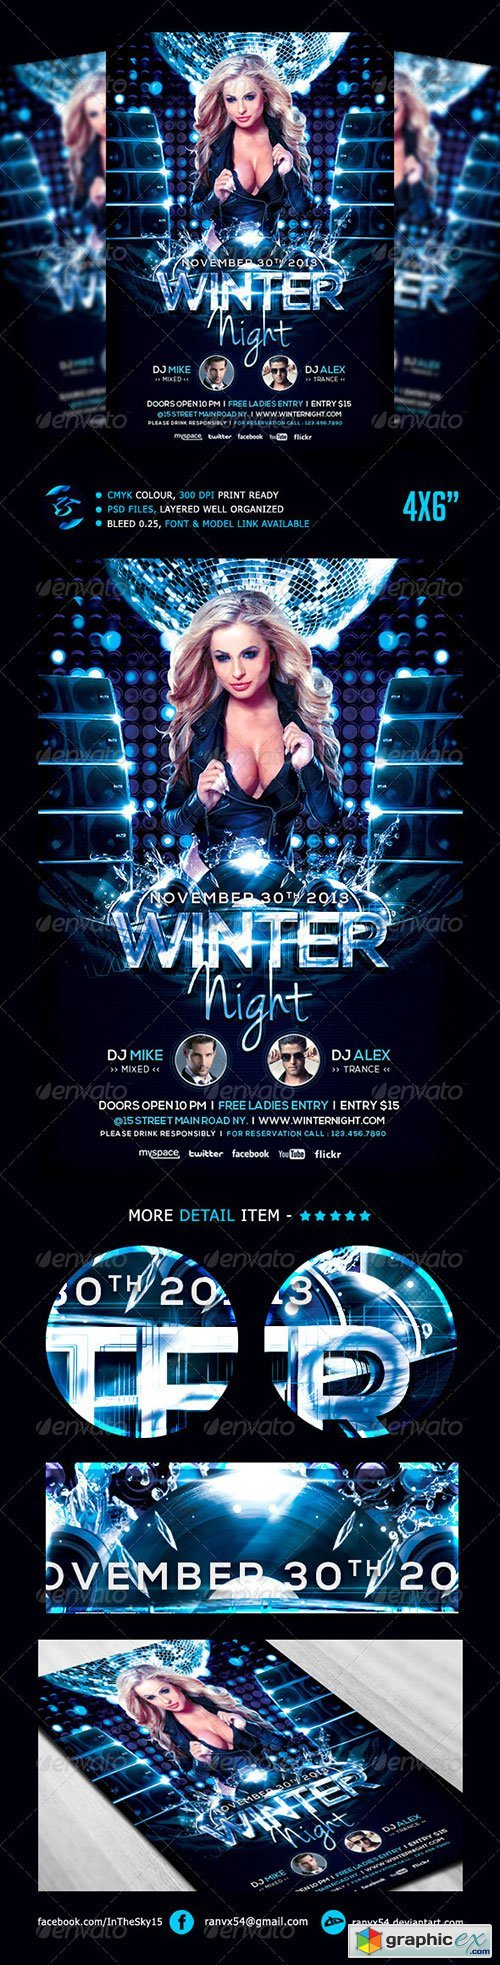 Winter Night Flyer Template 5478697